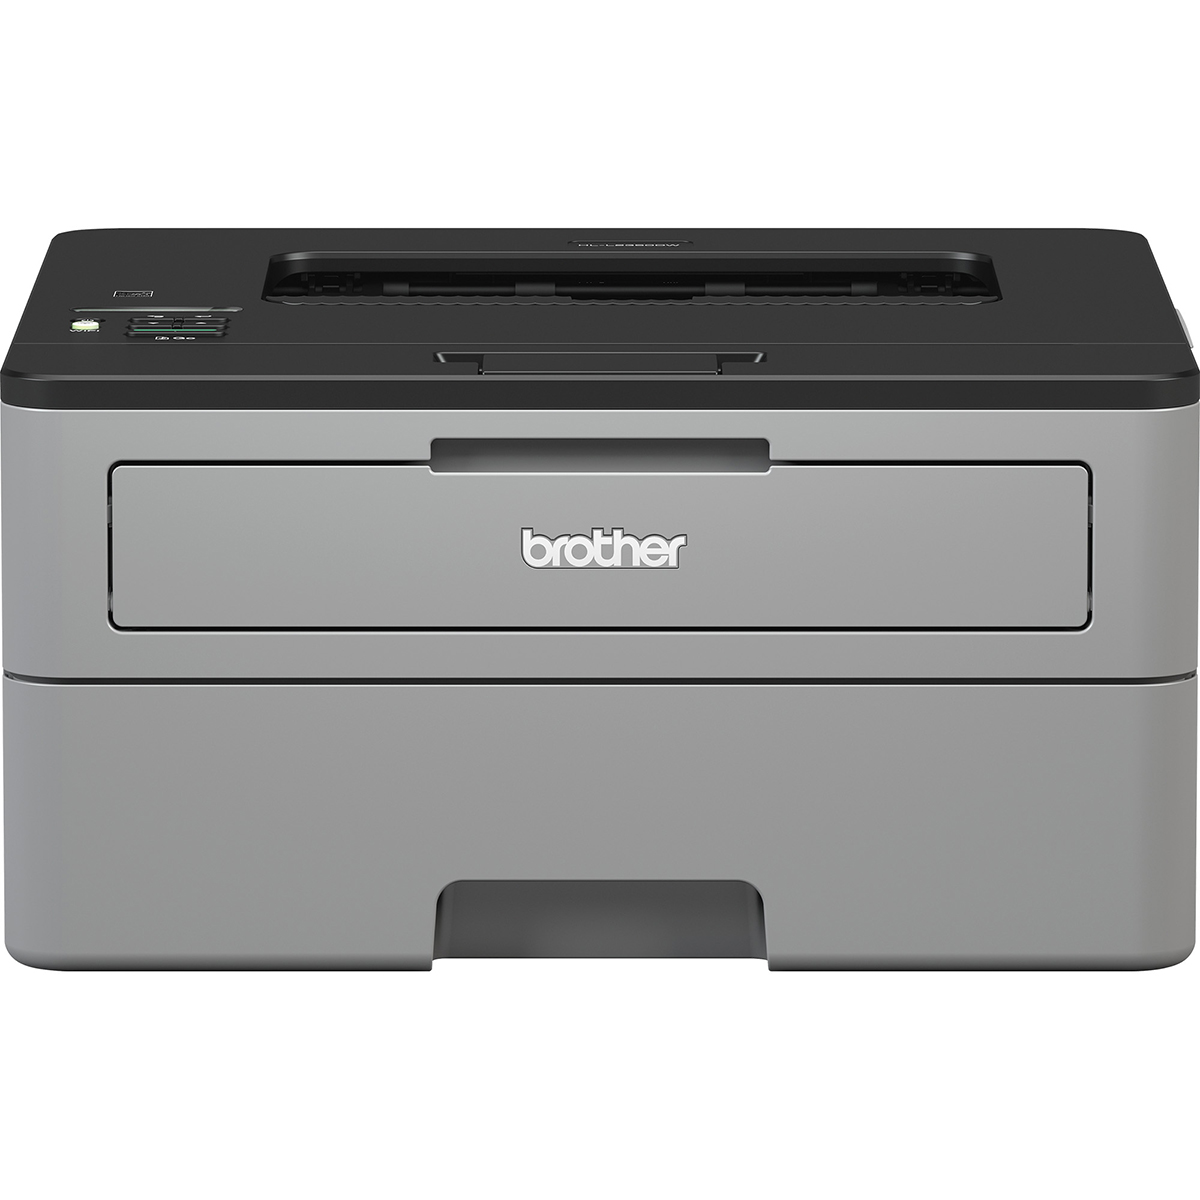 Brother HL-L2350DW A Grade - Refurbished Machine